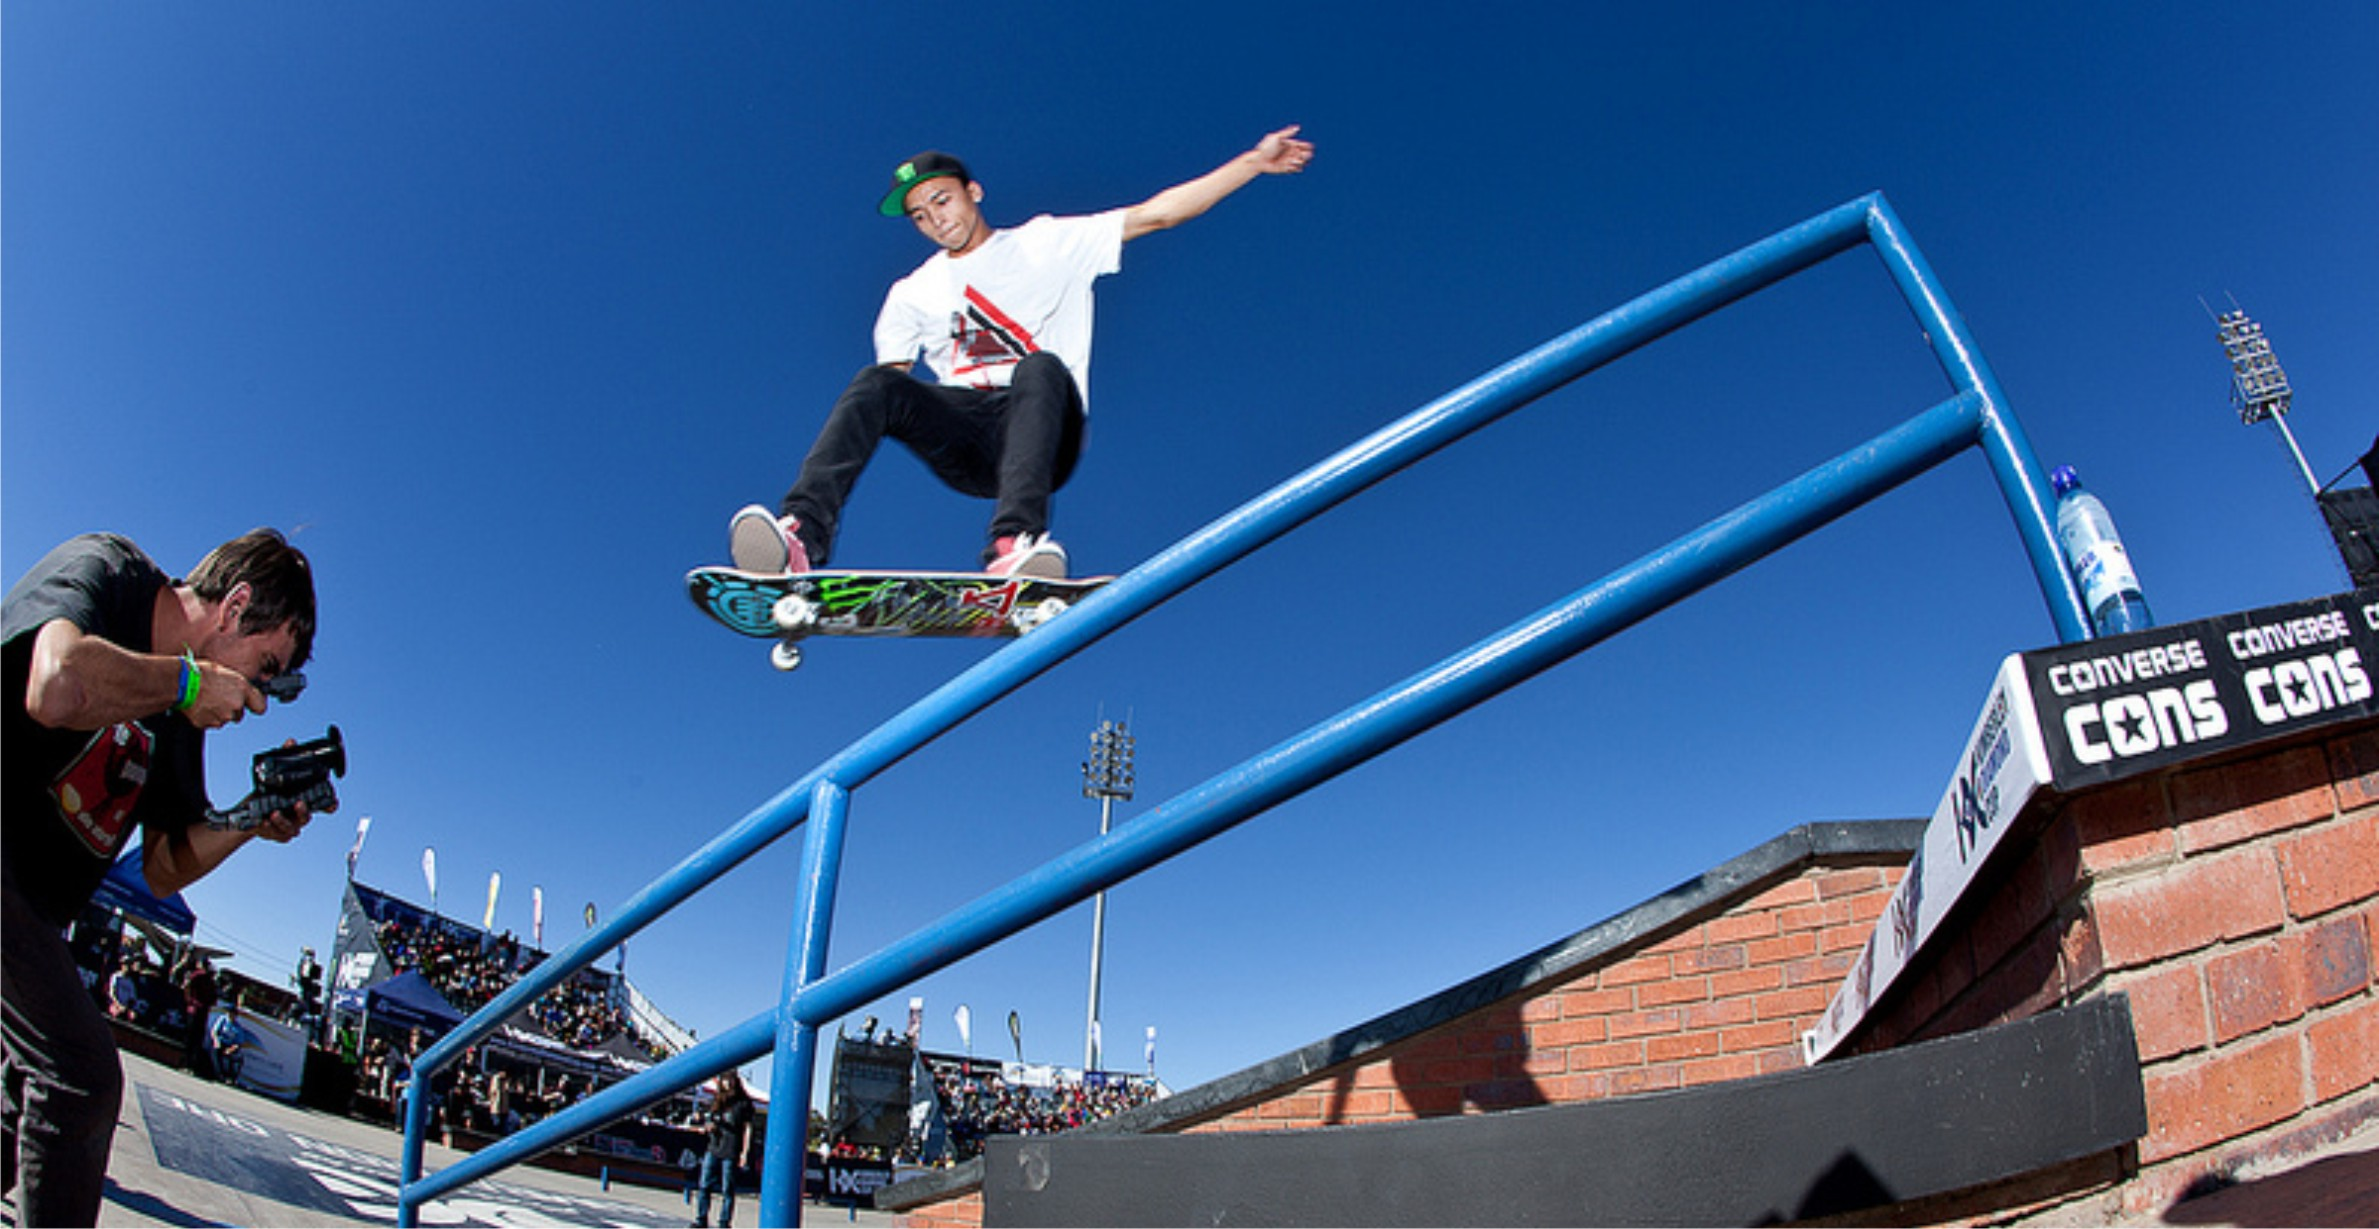 Nyjah Huston will be back in South Africa for the KDC